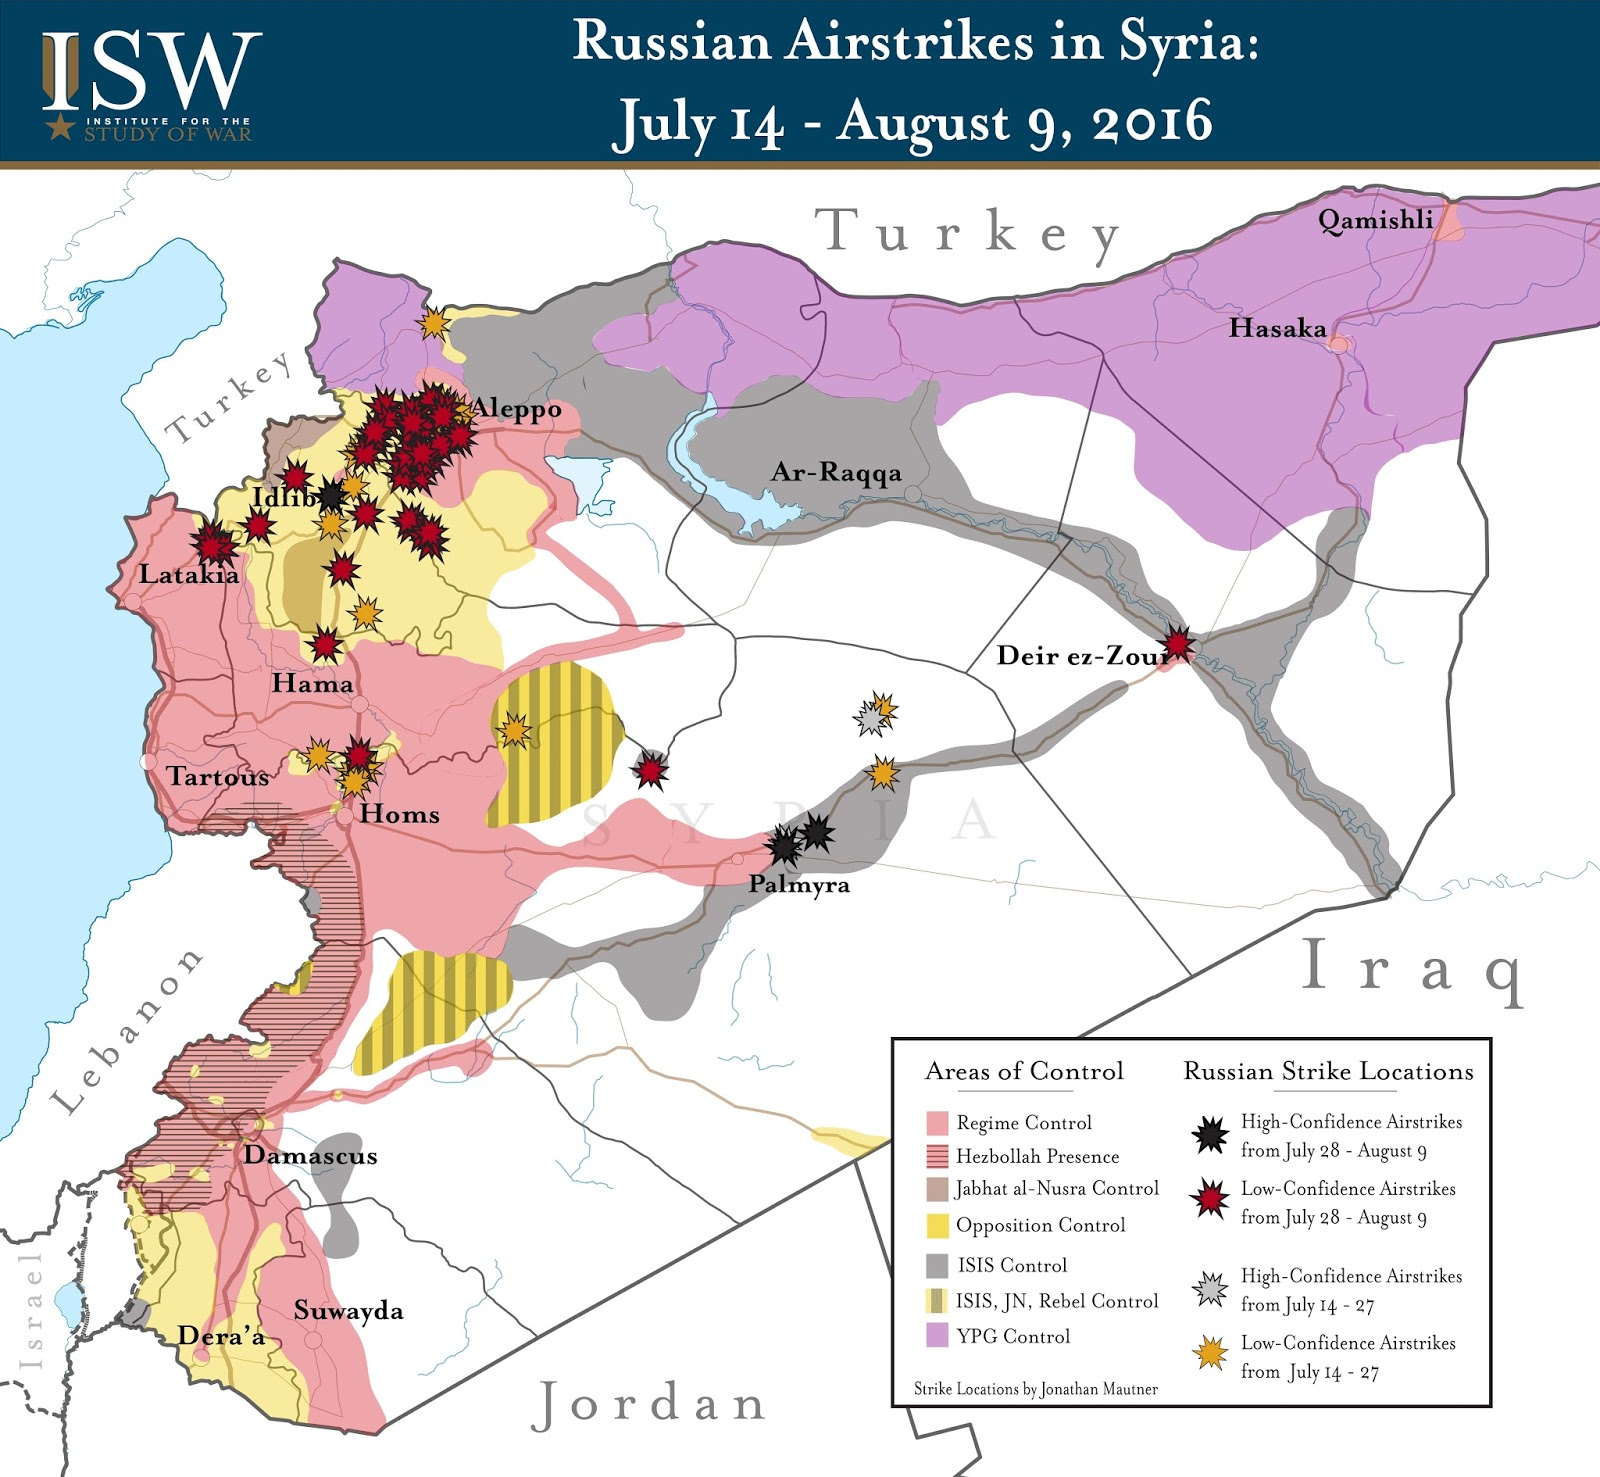 Russian Airstrikes in Syria: July 14 - August 9, 2016